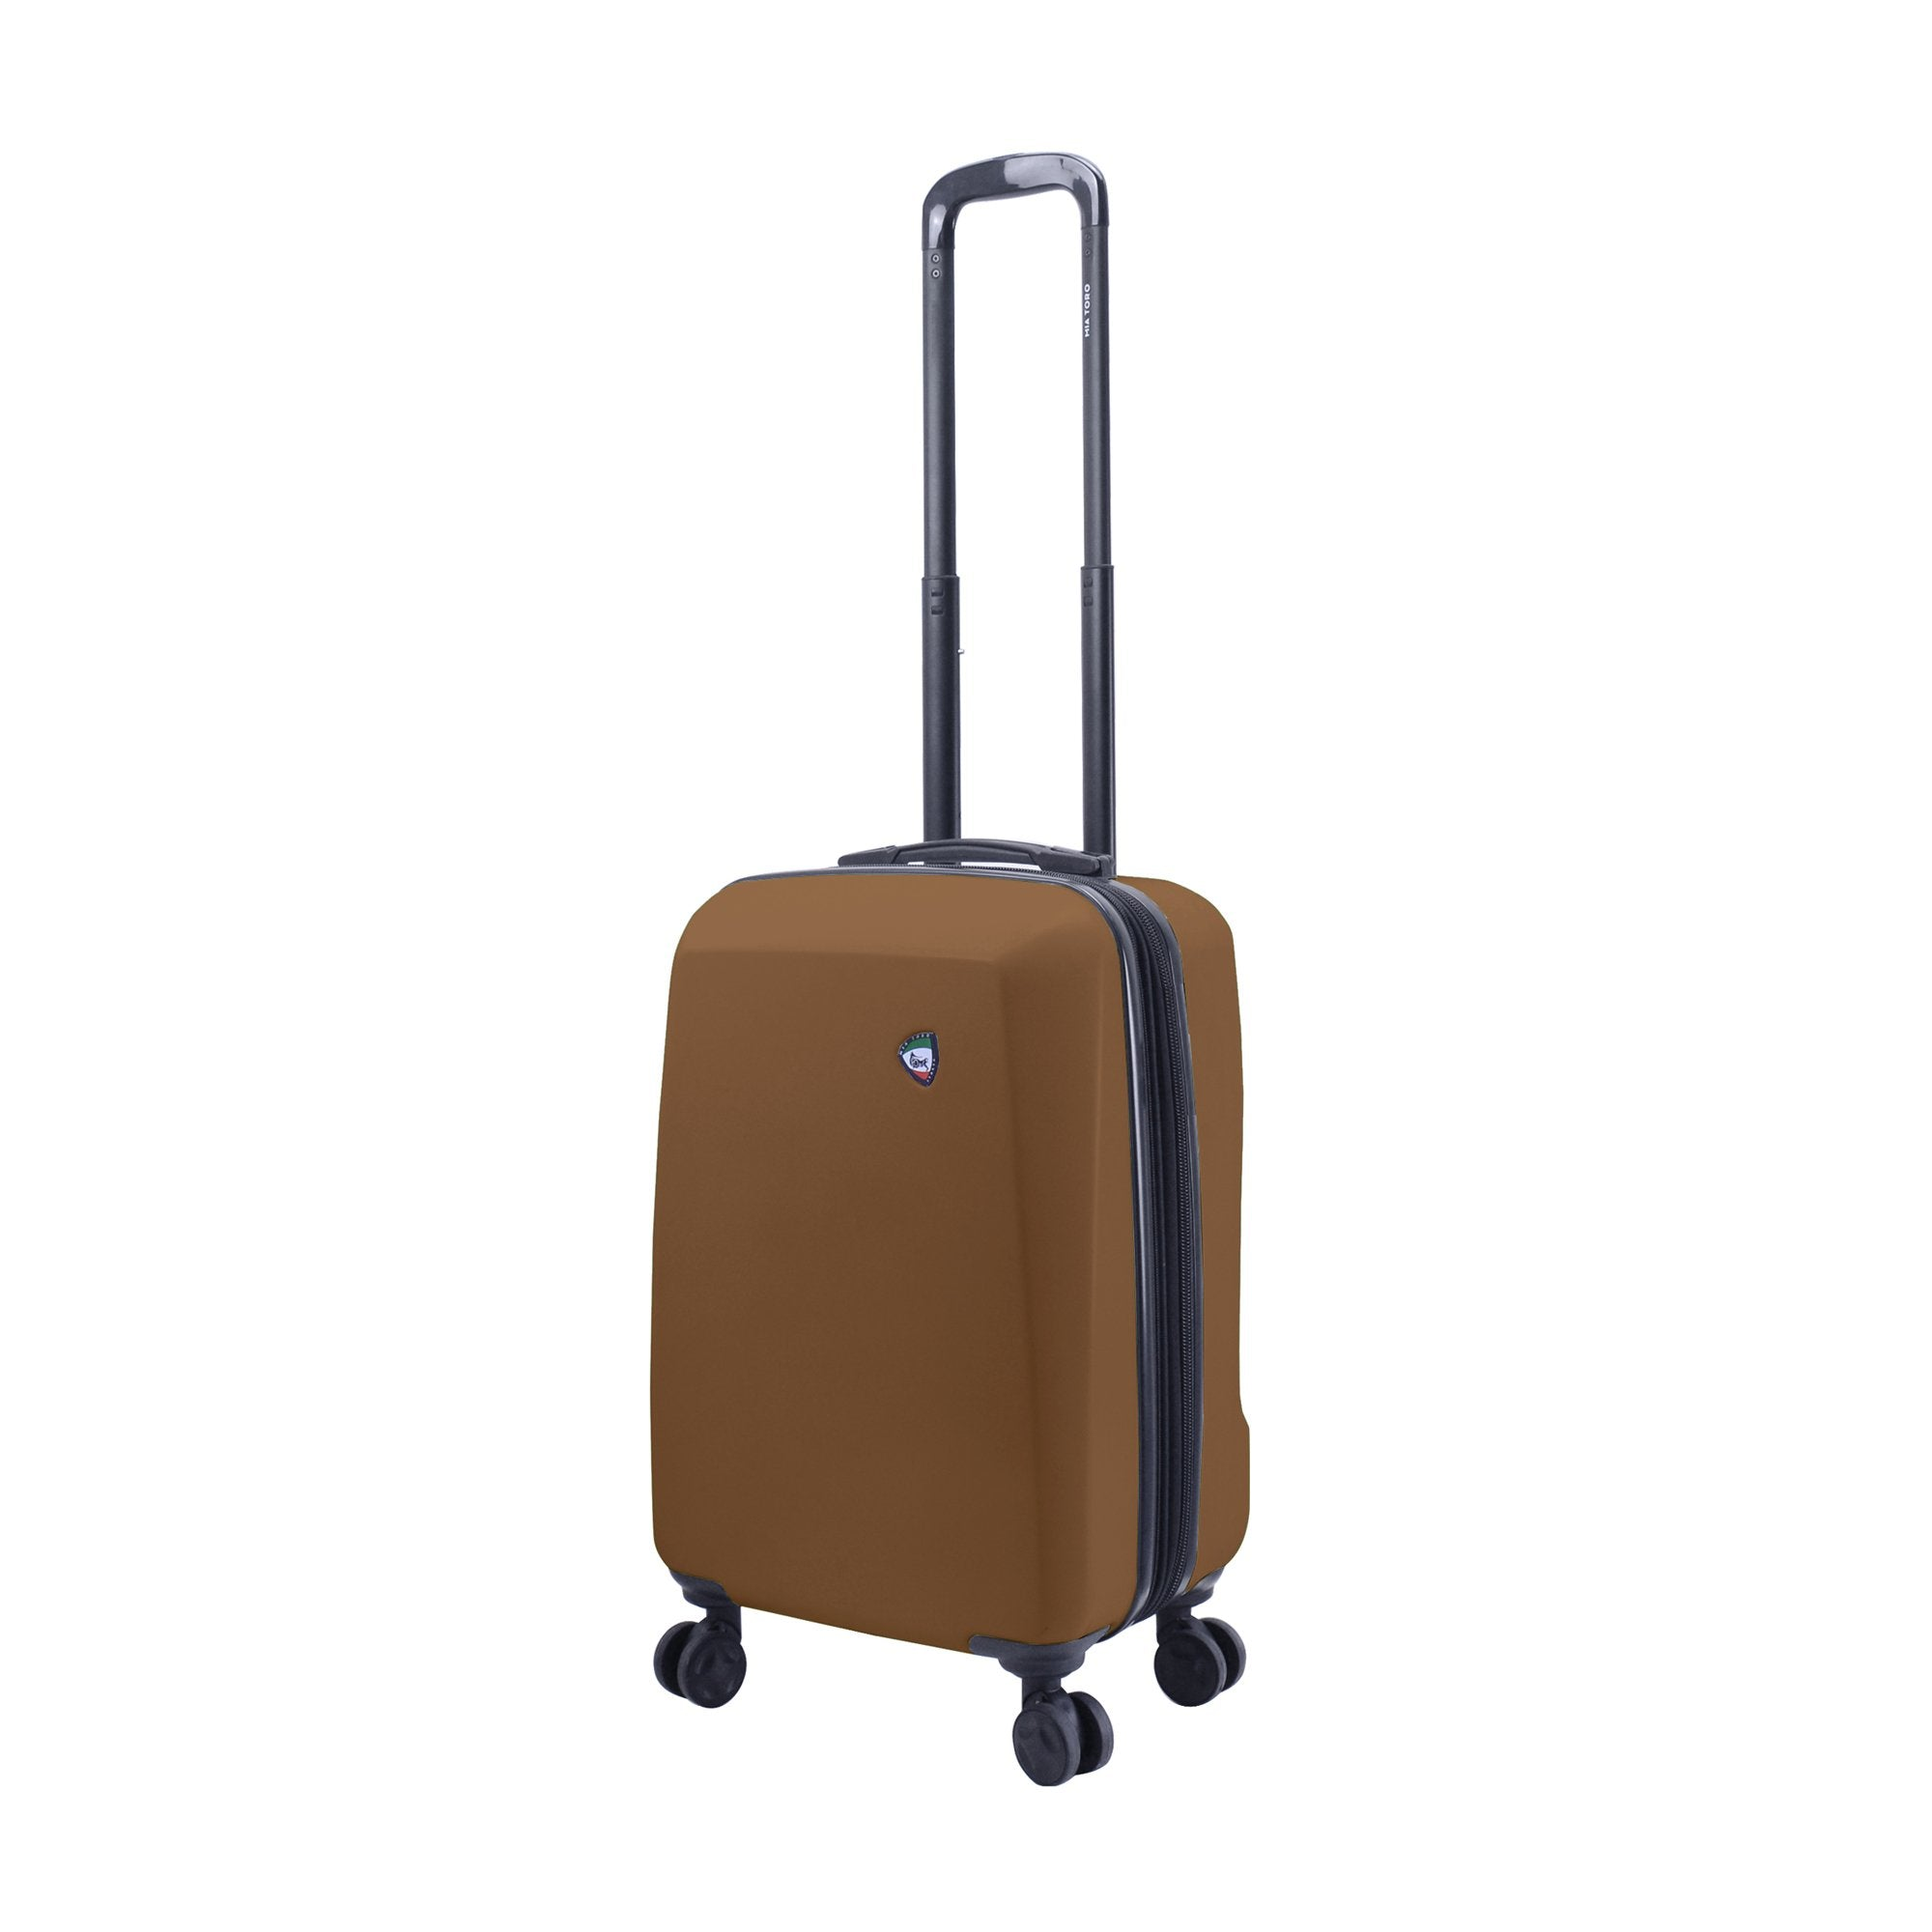 Mia Toro ITALY Gemma Hardside Spinner Carry-On